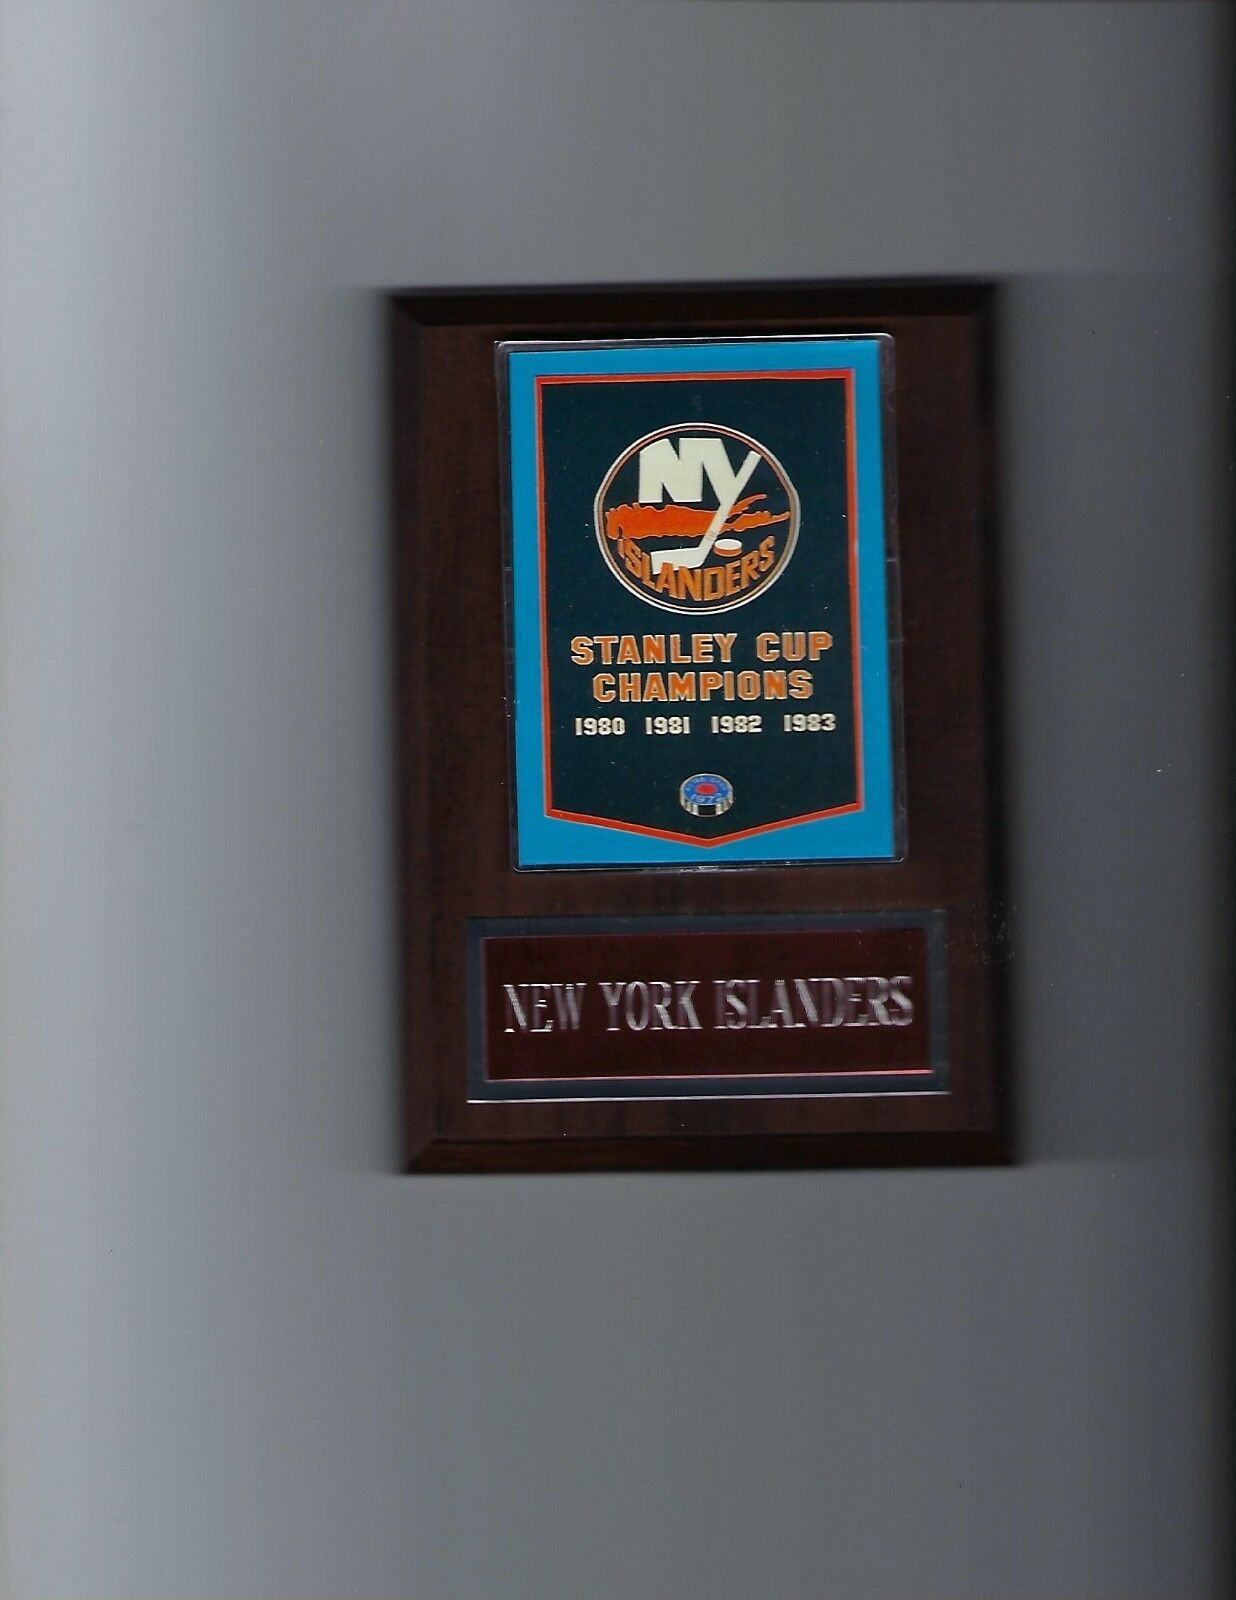 NEW YORK ISLANDERS BANNER PLAQUE NY STANLEY CUP CHAMPIONS CHAMPS HOCKEY NHL - $3.95